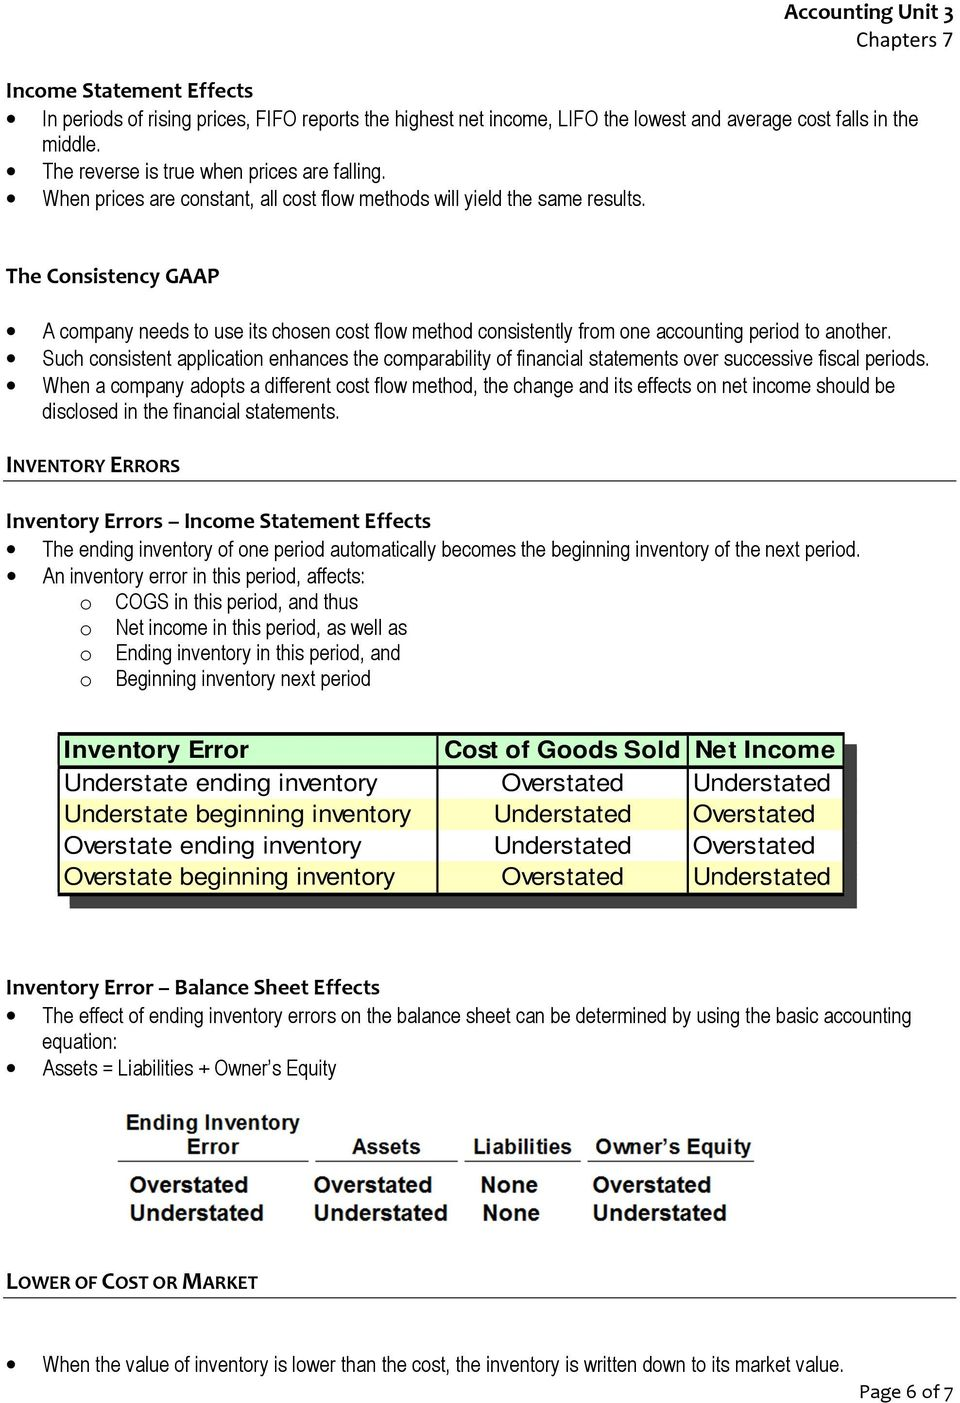 how to fix income statement if inventory was overstated